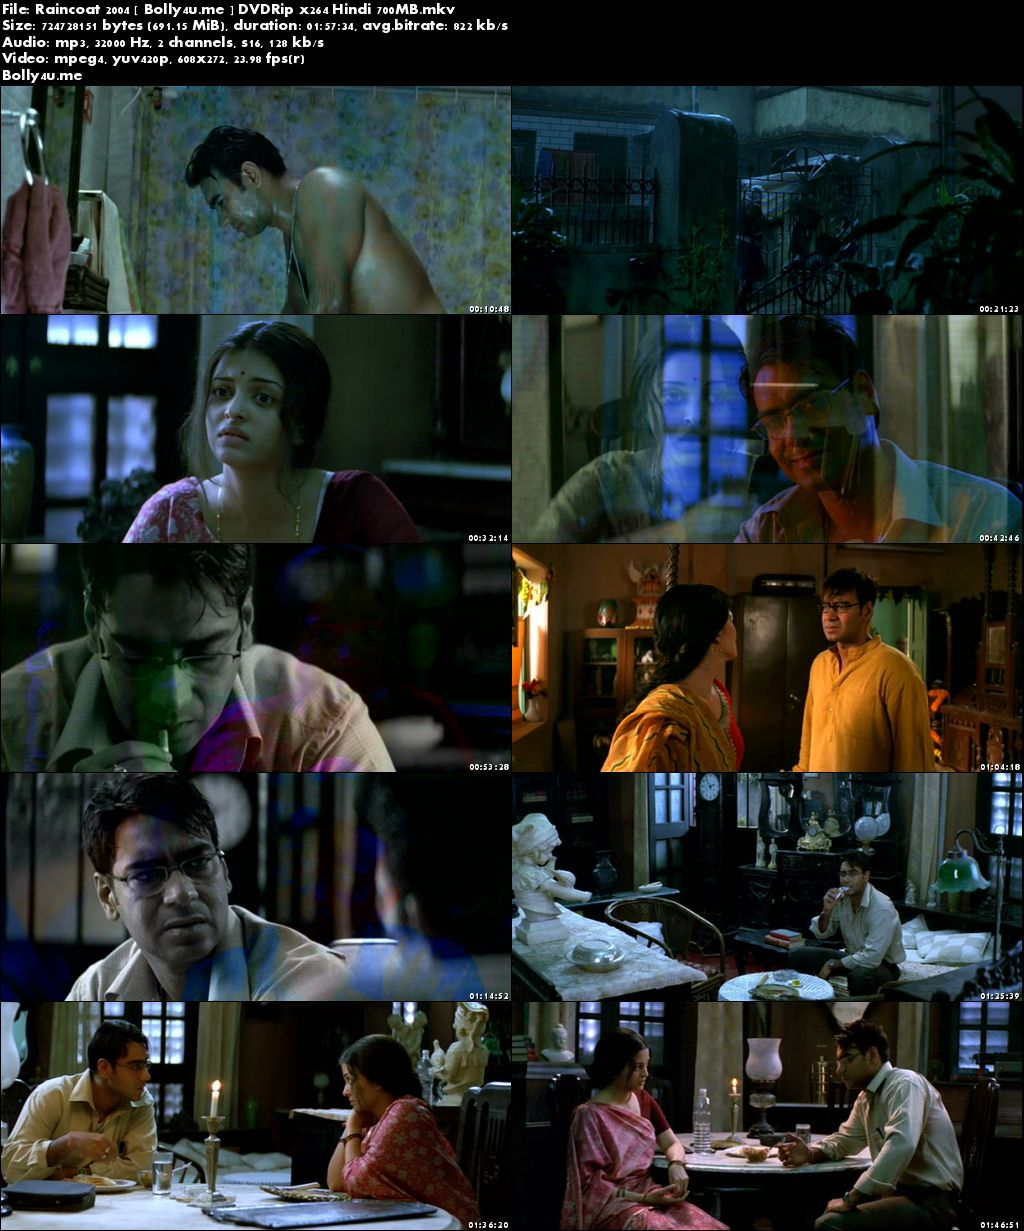 Raincoat 2004 DVDRip 700MB Full Hindi Movie Download x264